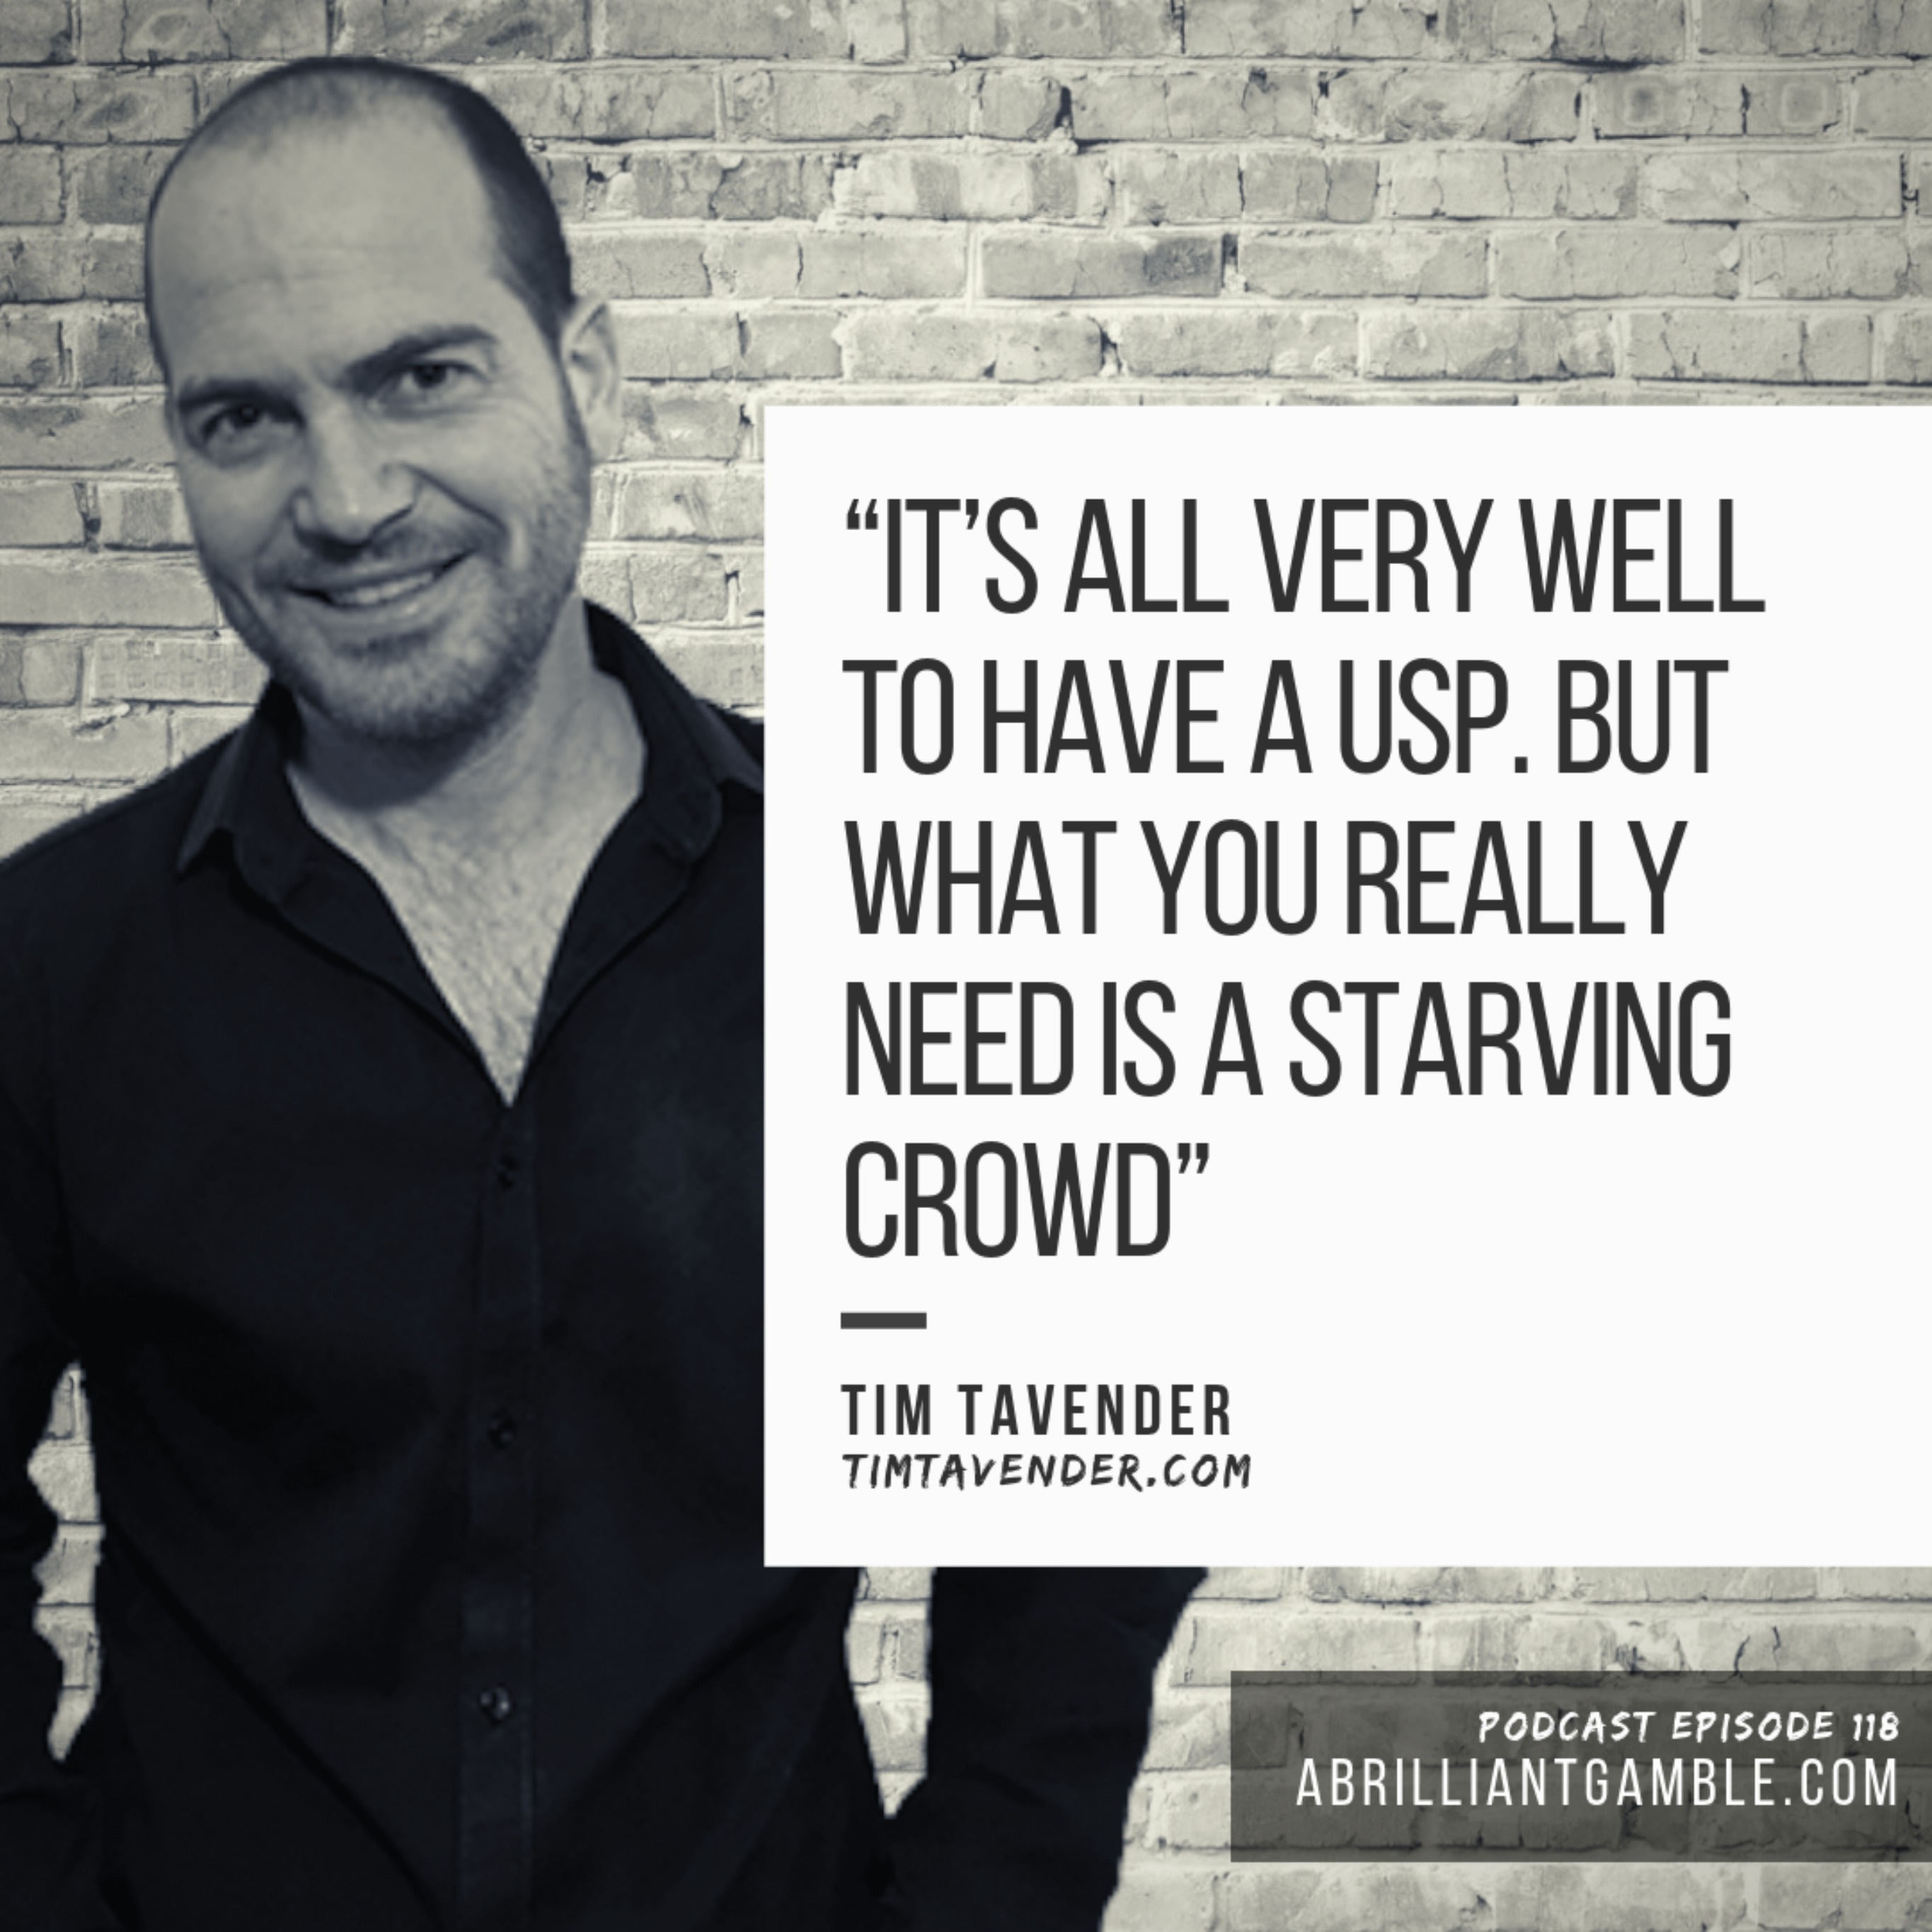 118 Finding your starving crowd, with Tim Tavender